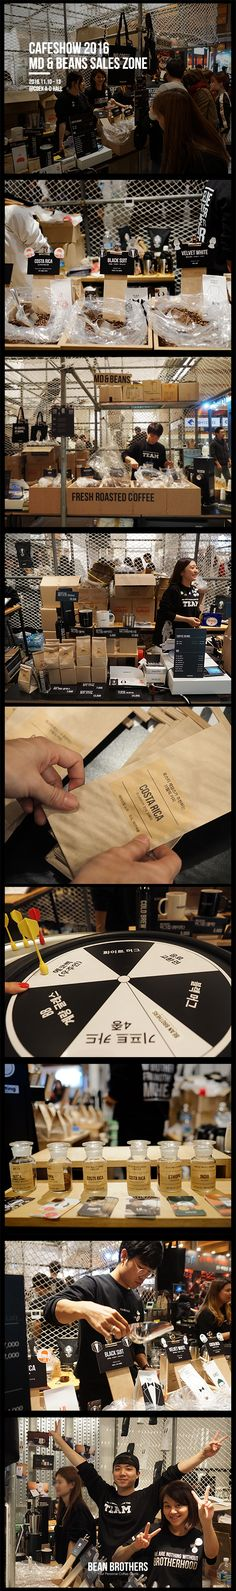 SEOUL CAFESHOW 2016 BEAN BROTHERS  MD&BEANS ZONE